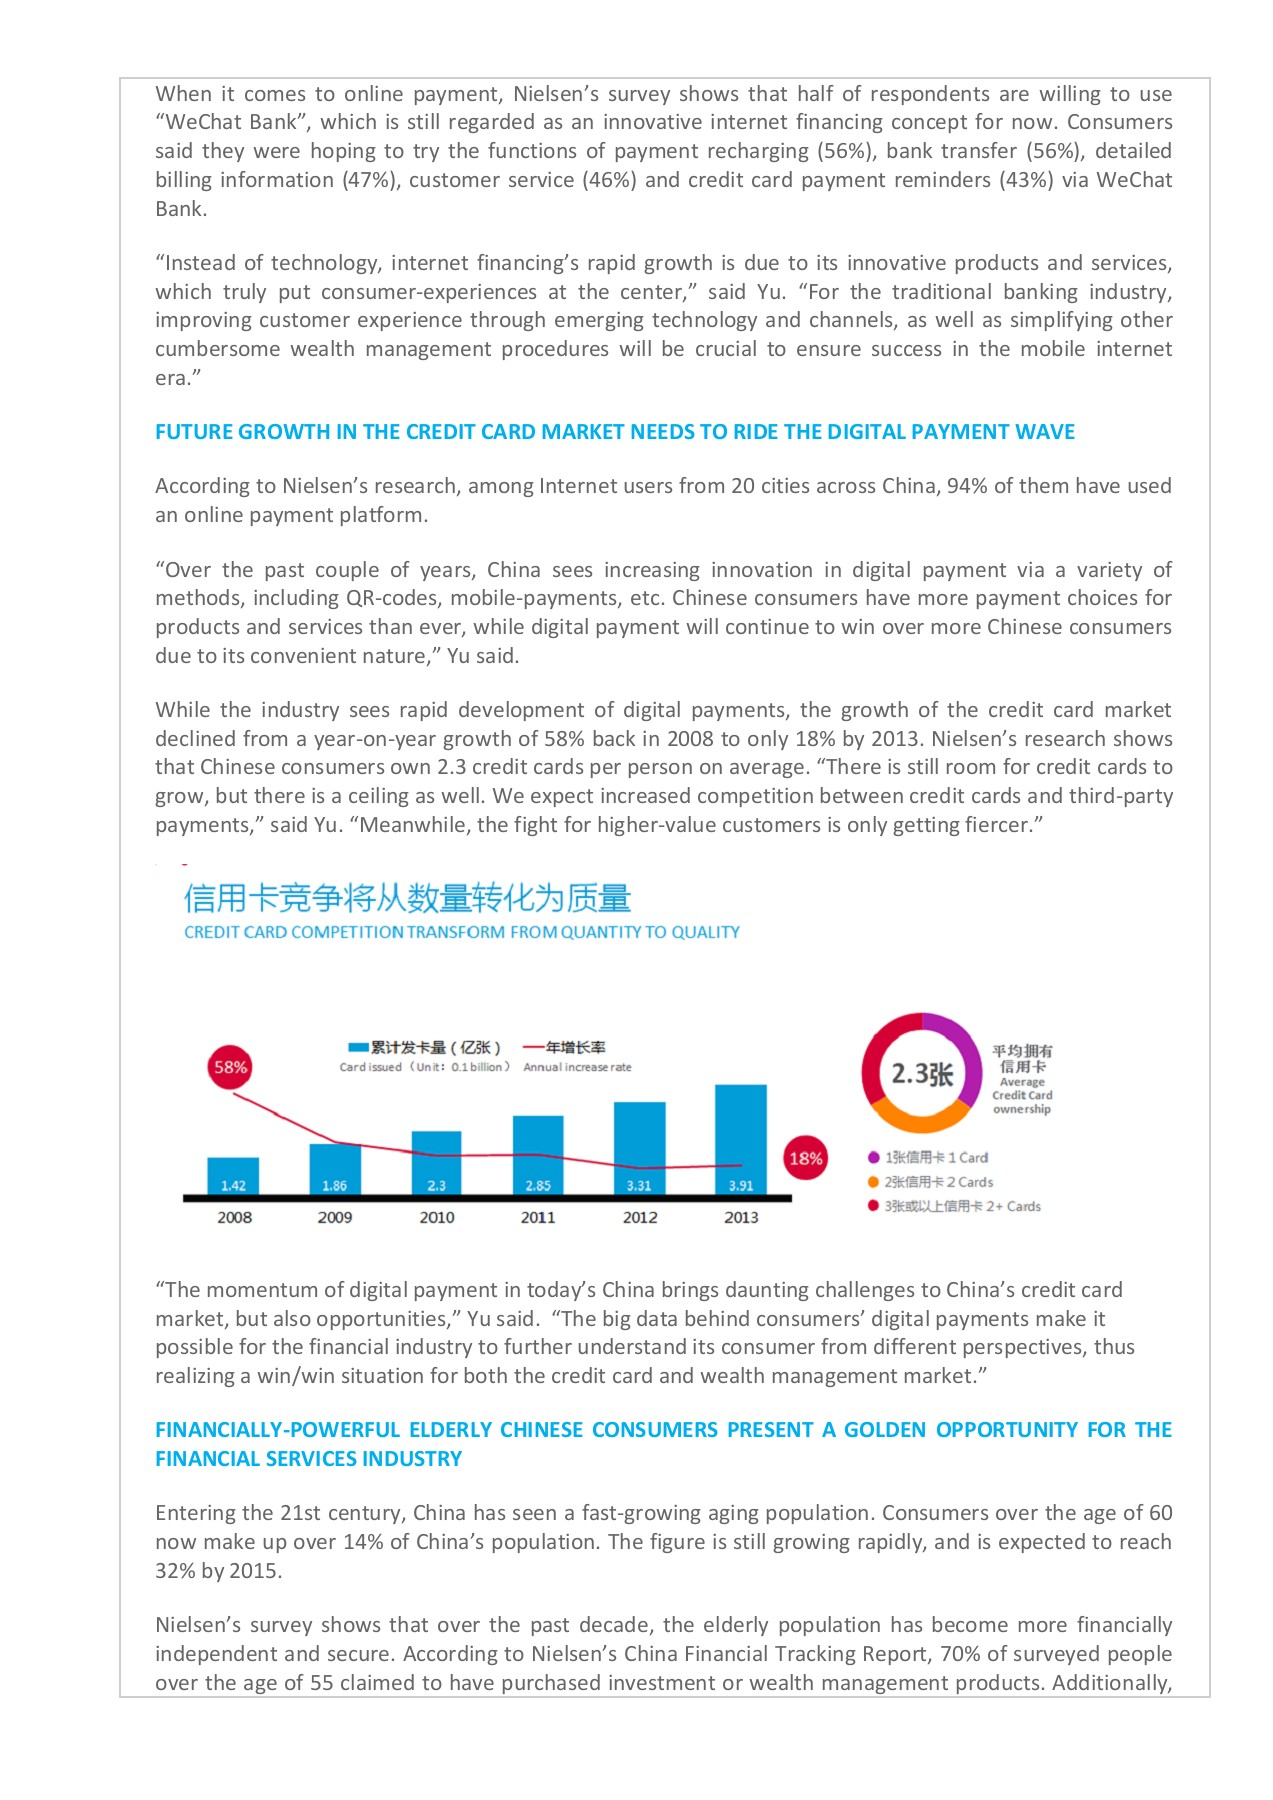 Nielsen Identifies Three Key Trends in China's Finance